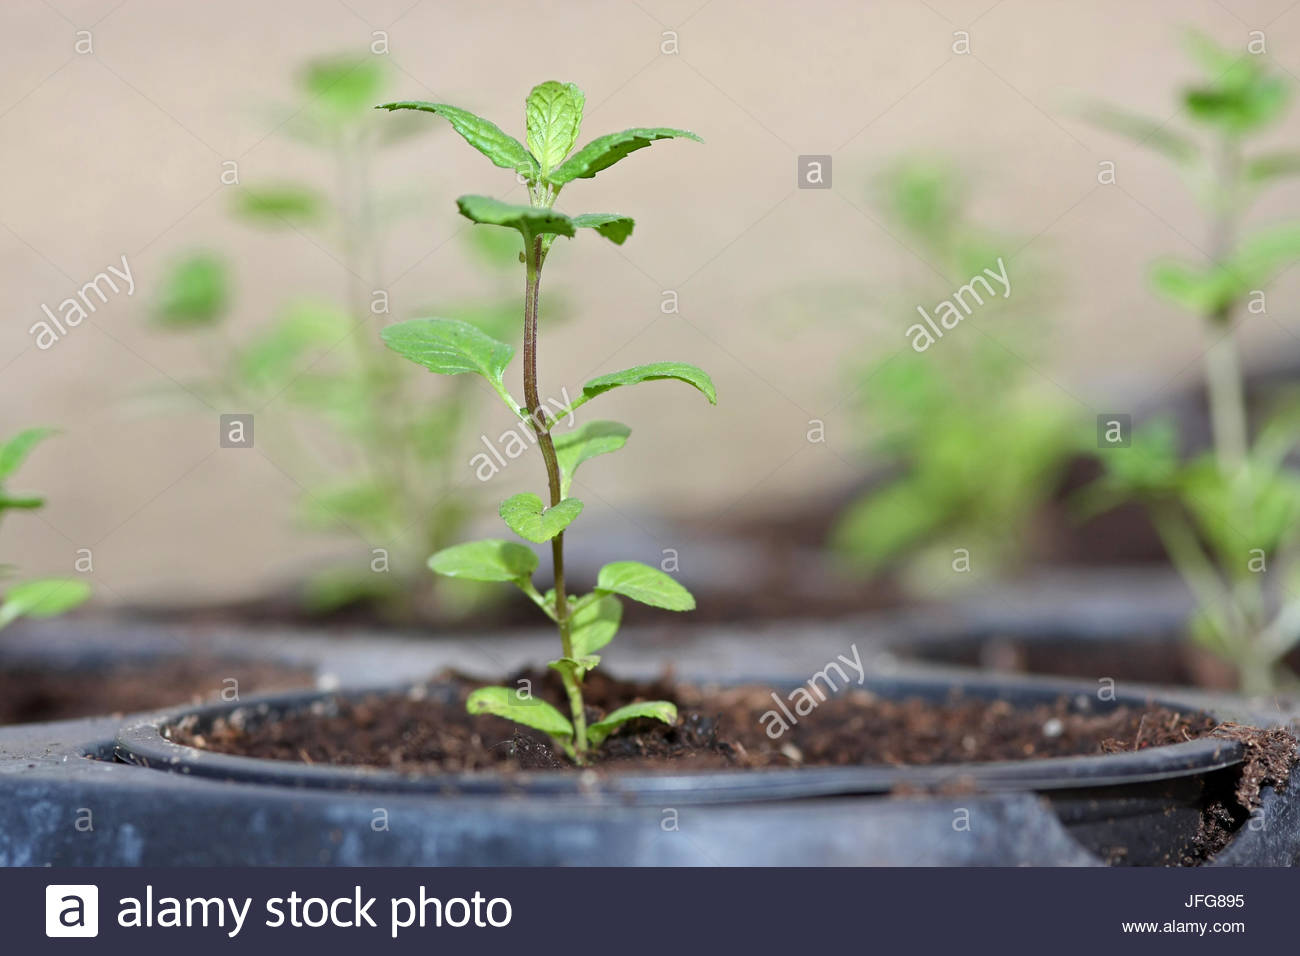 Young peppermint plant in pot - Stock Image